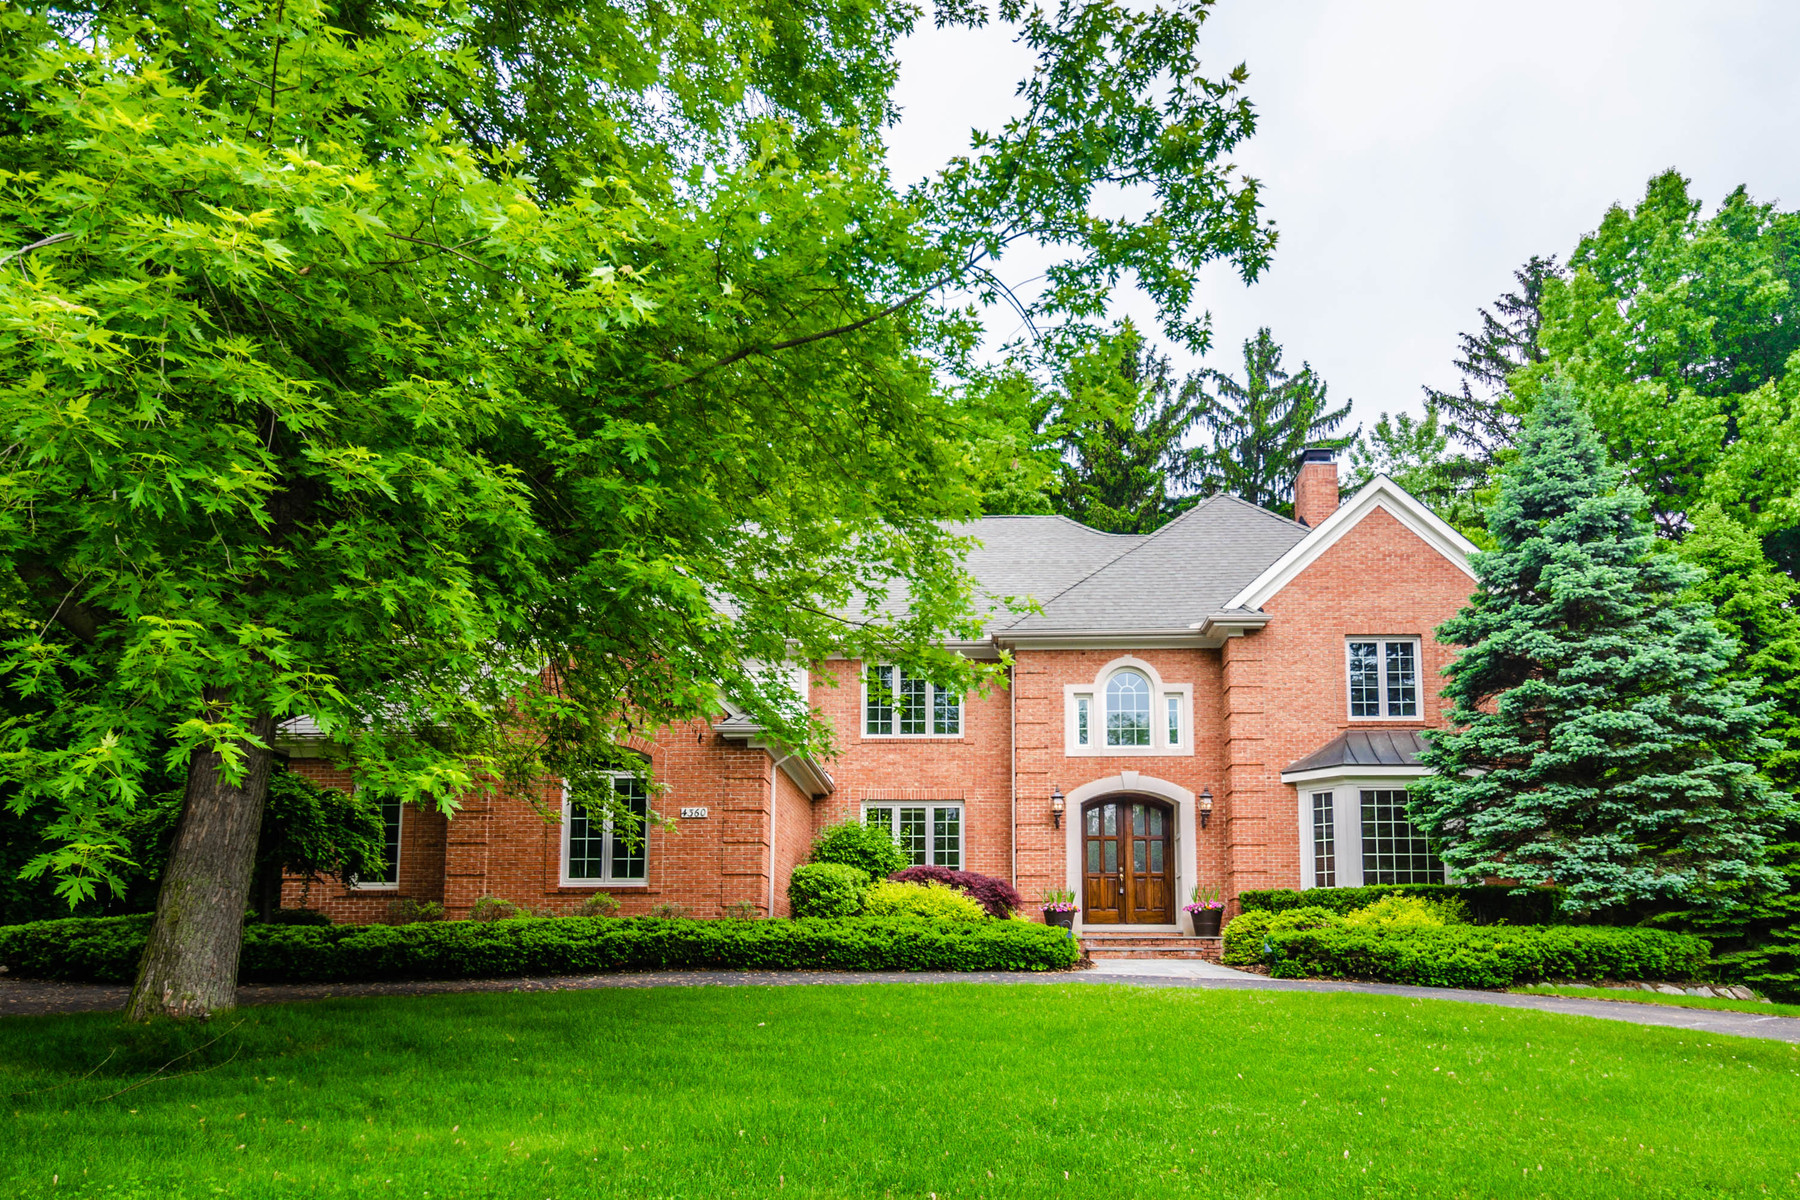 Single Family Homes for Sale at Bloomfield 4360 Spruce Hill Lane Bloomfield, Michigan 48301 United States